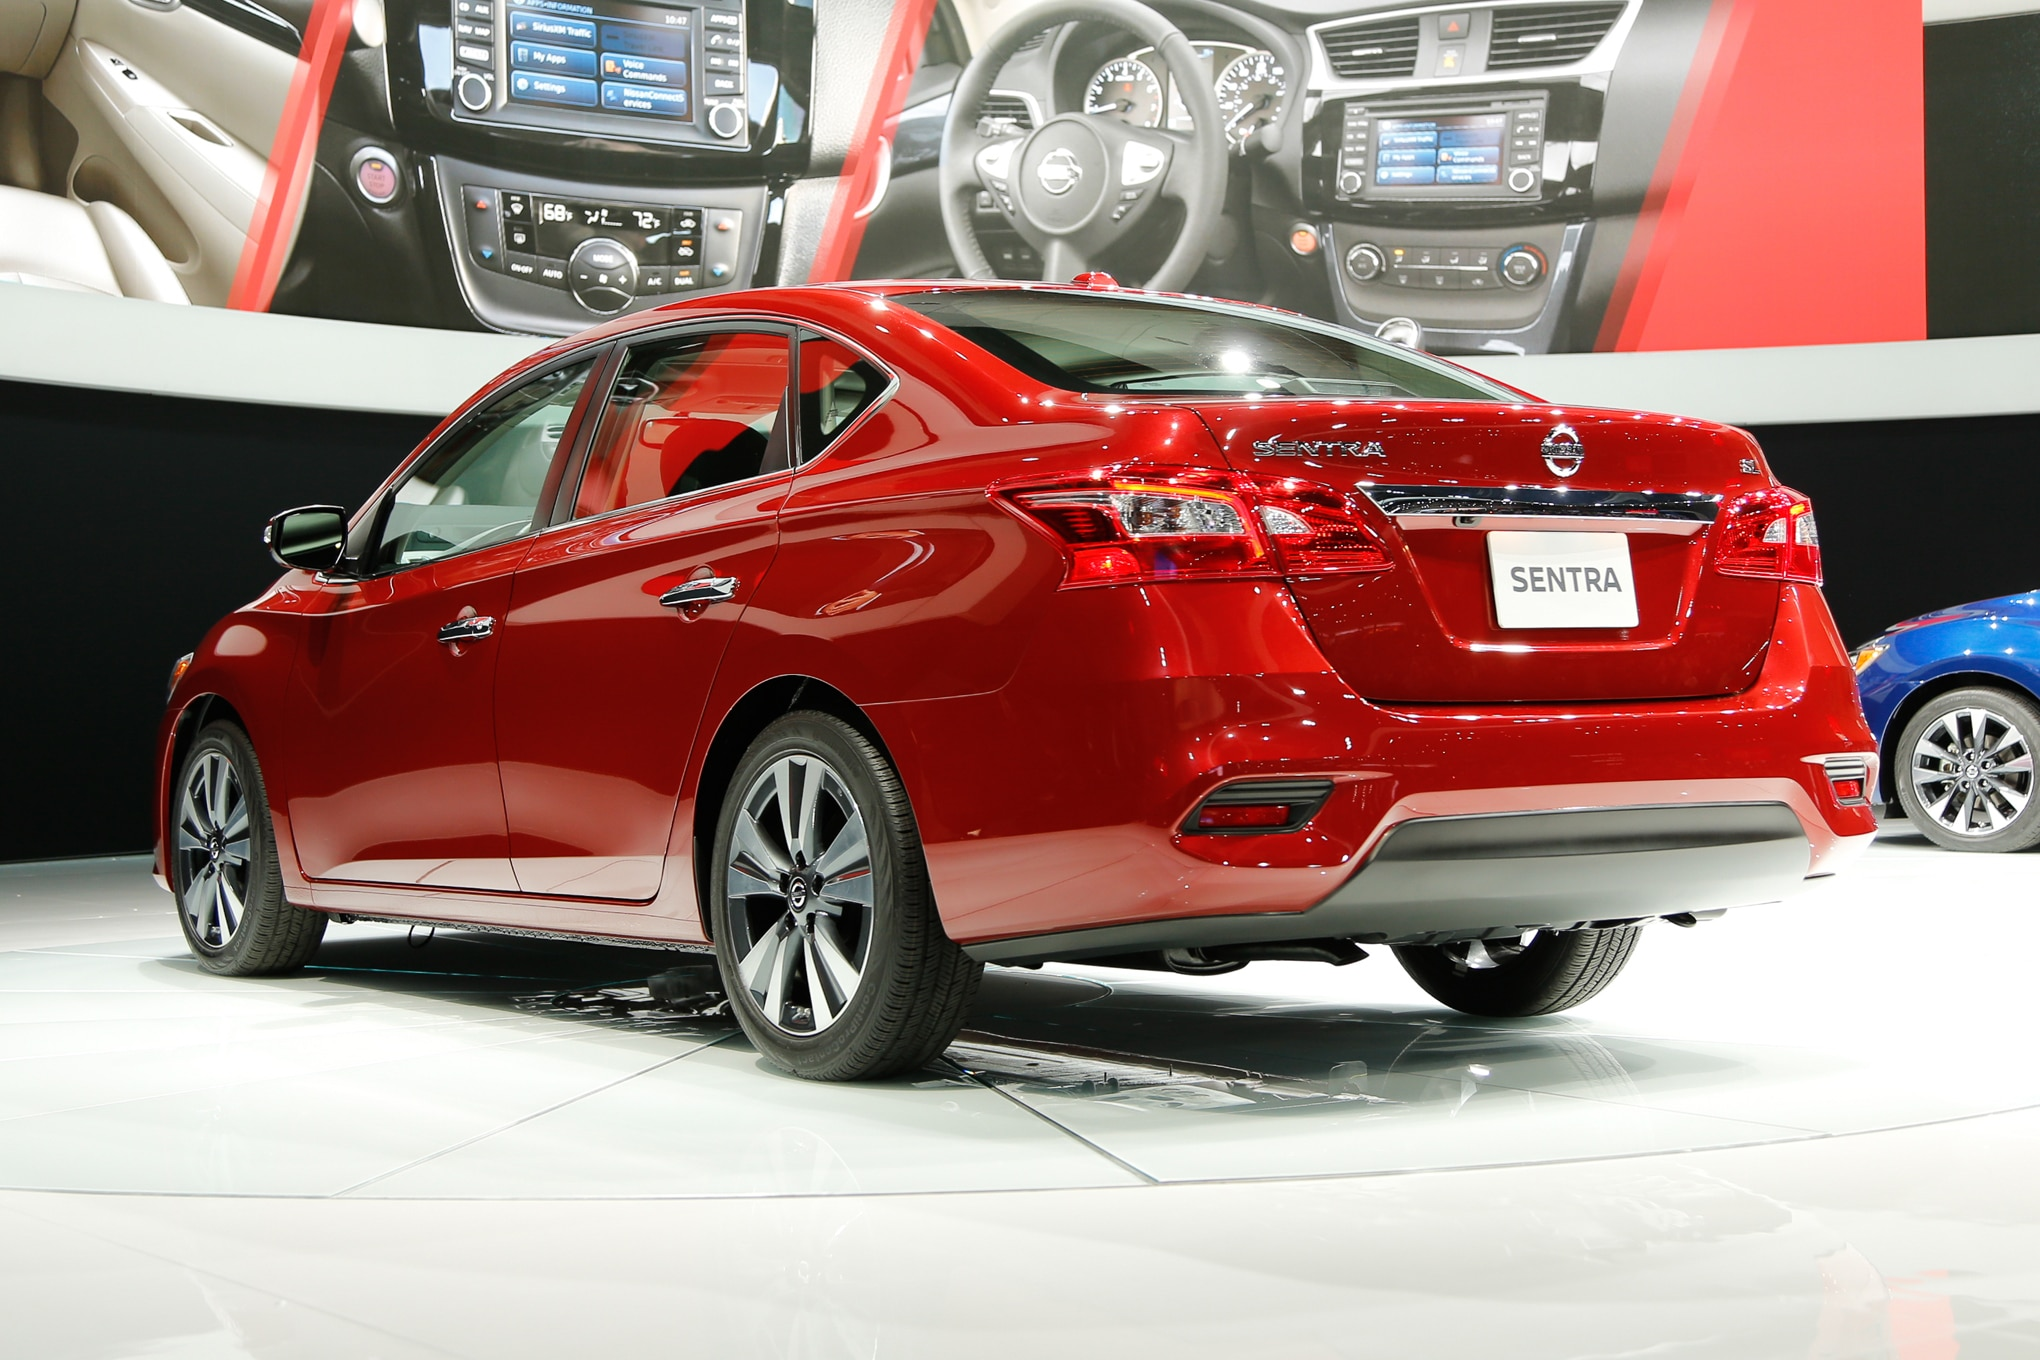 2015 Nissan Maxima For Sale >> 2016 Nissan Sentra Refreshed, Looks More like Altima and ...